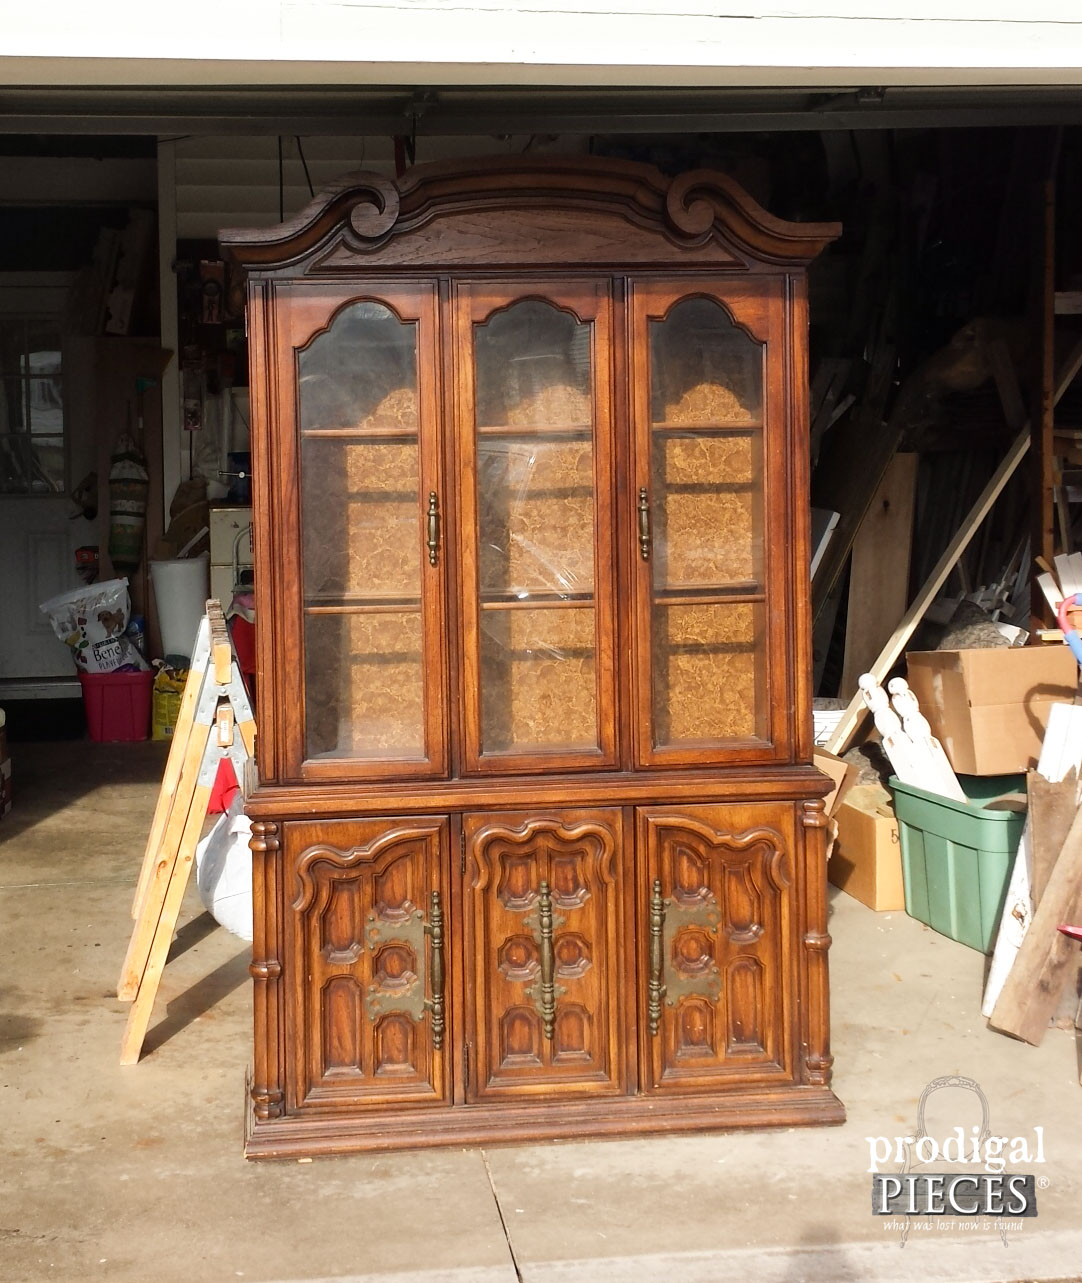 Vintage China Cabinet Before Wallpaper Makeover by Prodigal Pieces | www.prodigalpieces.com